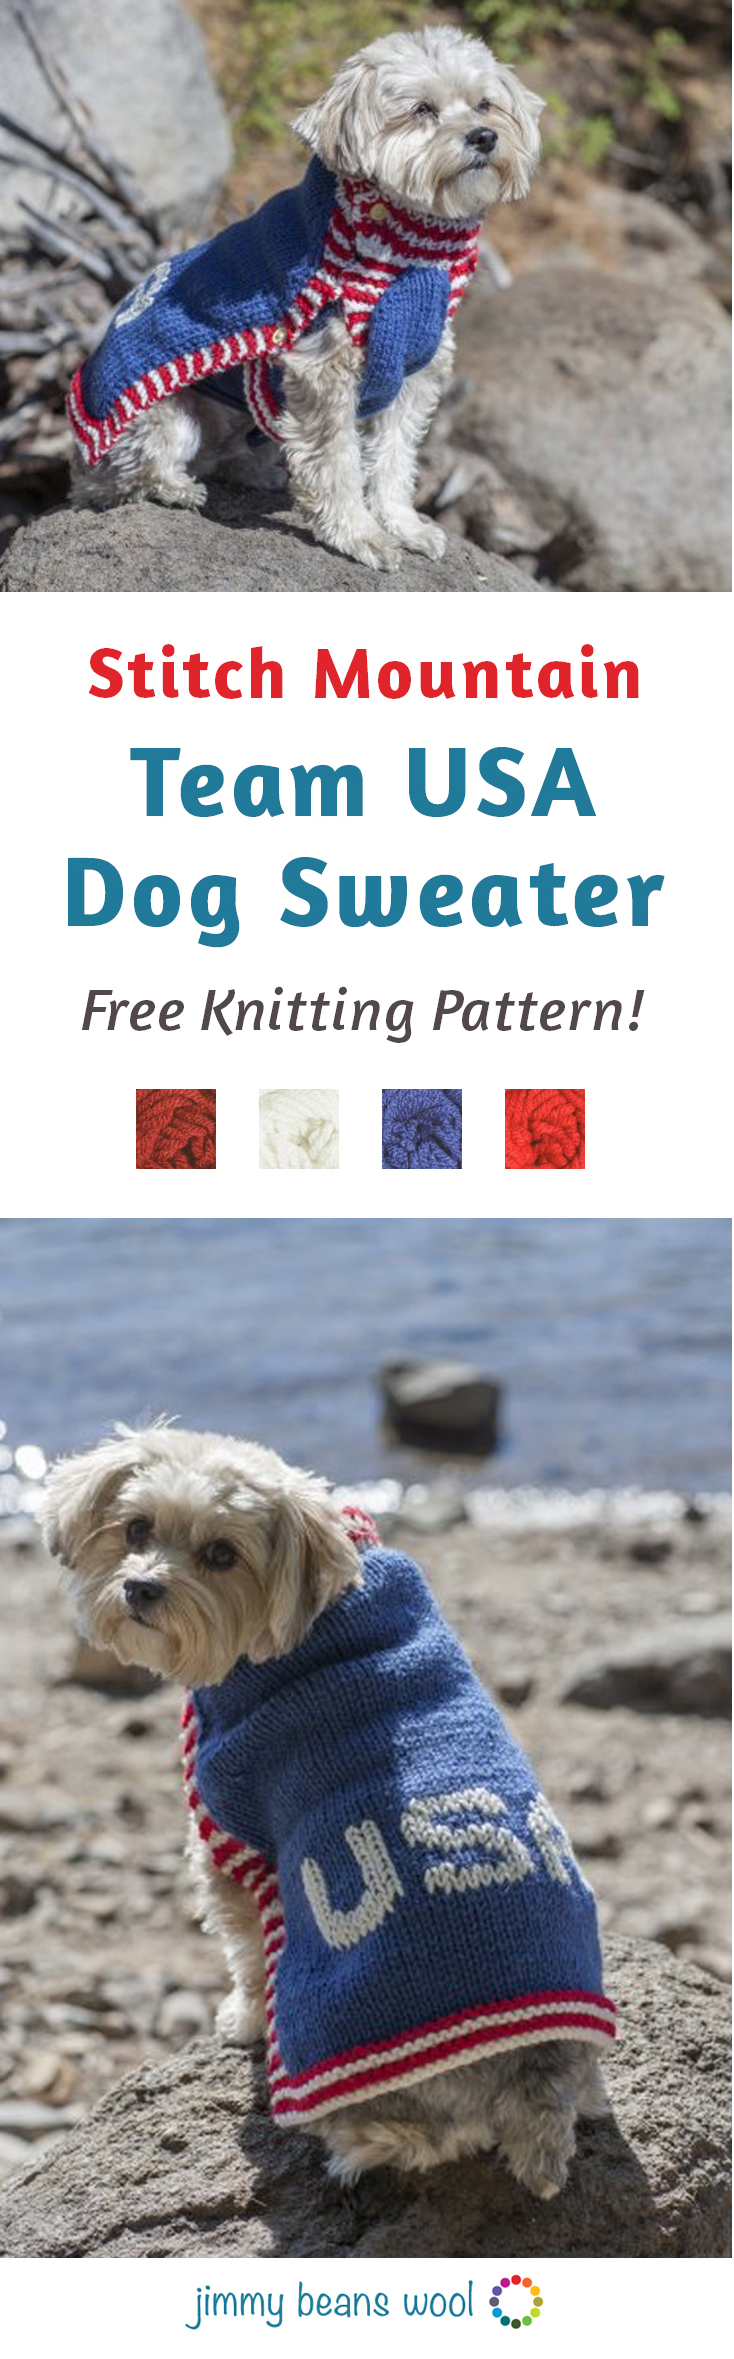 Stitch mountain team usa dog sweater free knitting pattern free stitch mountain team usa dog sweater free knitting pattern free knitting pattern knit your bankloansurffo Gallery